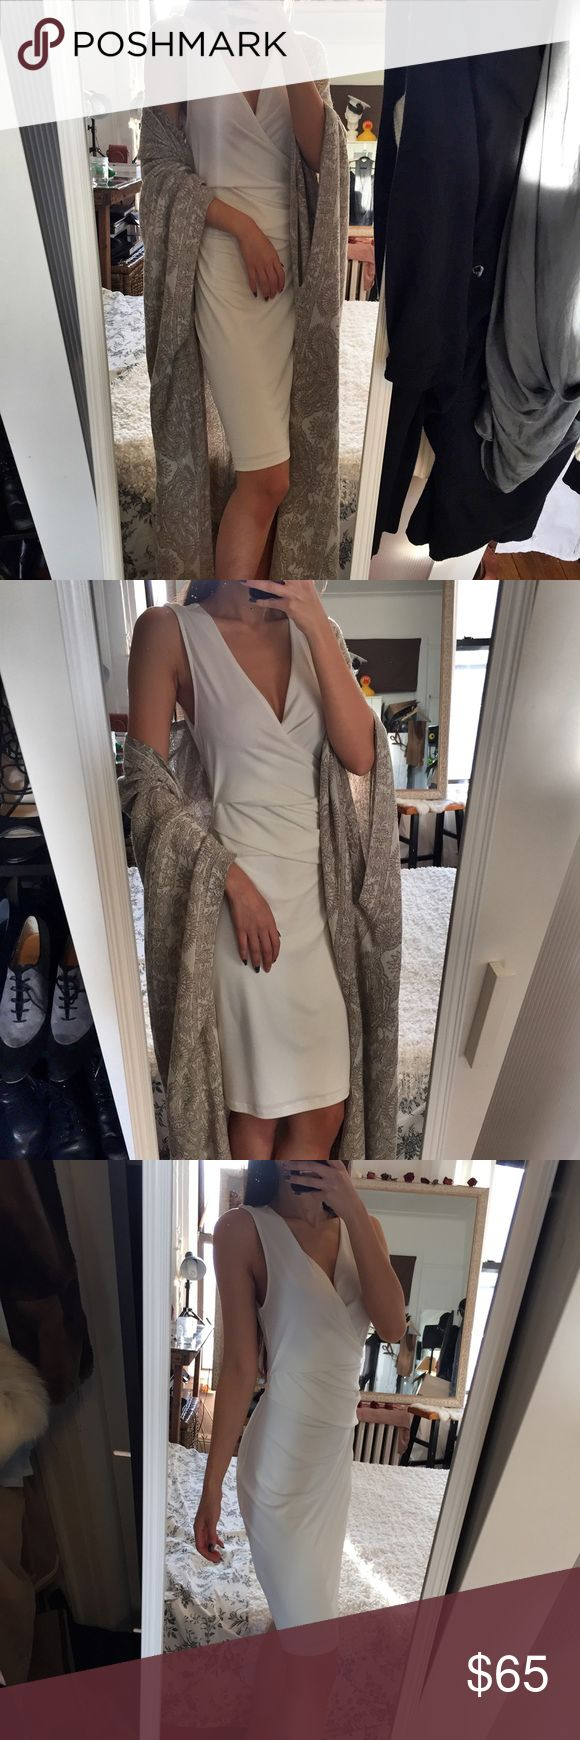 Graham and Spencer White Sleeveless Draped Dress White elegant body hugging draped dress by Graham & Spencer. This dress is in perfect length to the knees and is very comfortable. This is a size P and fits like a XS. In mint condition Graham & Spencer Dresses Midi